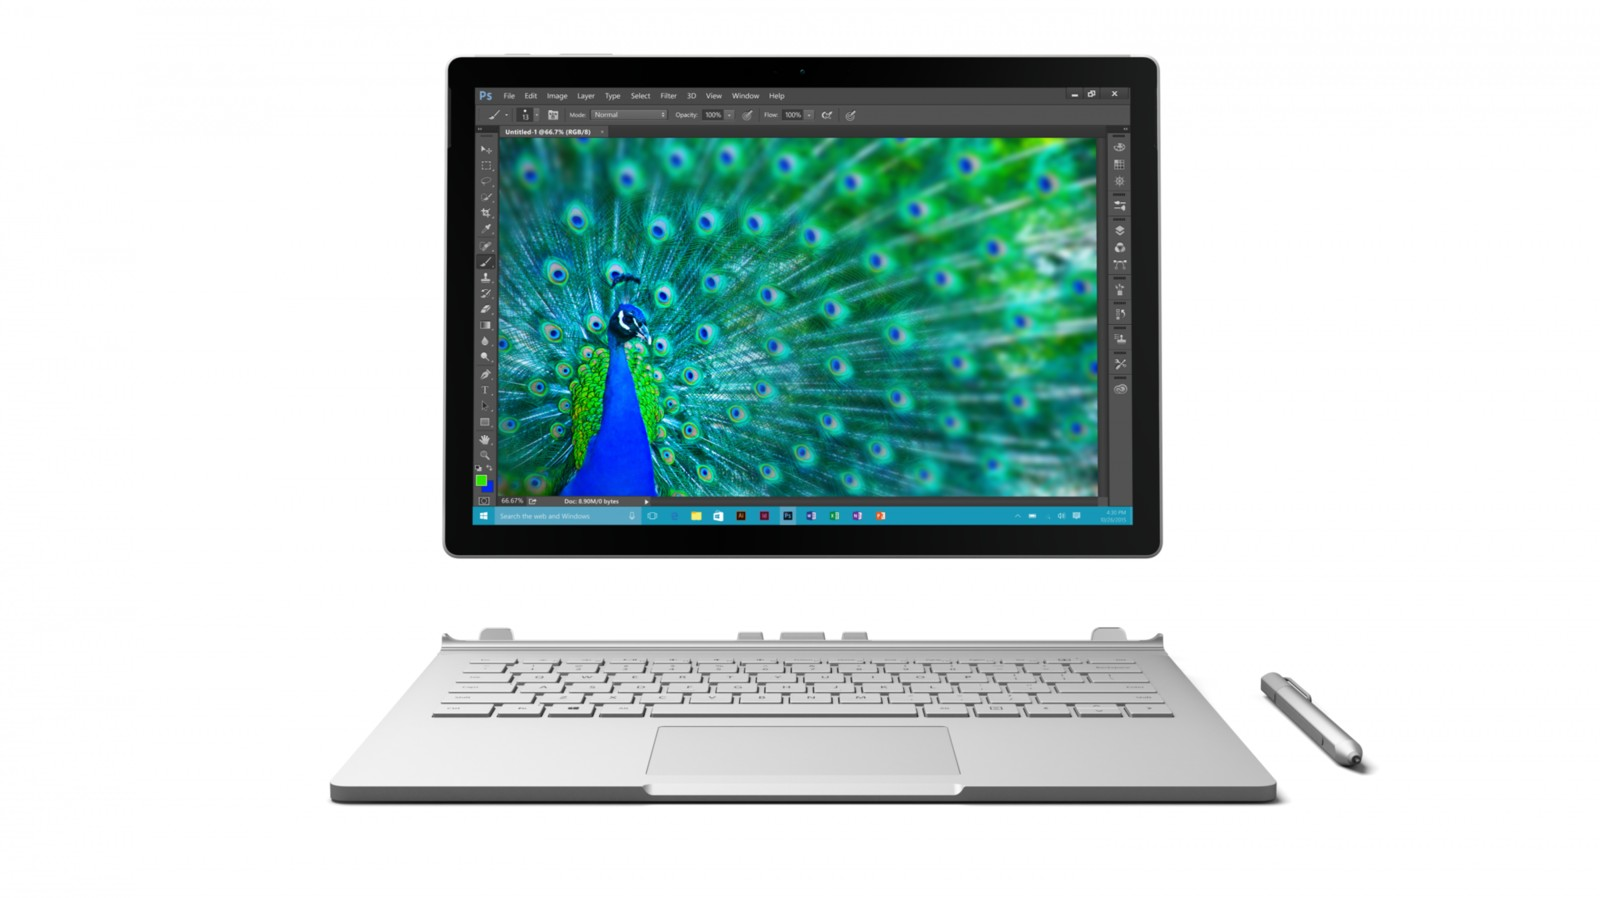 Microsoft Rolls Out Surface Book Surface Pro 4 Firmware Update With Windows Hello As there are many devices with no one to provide the newest firmware update every single. softpedia news